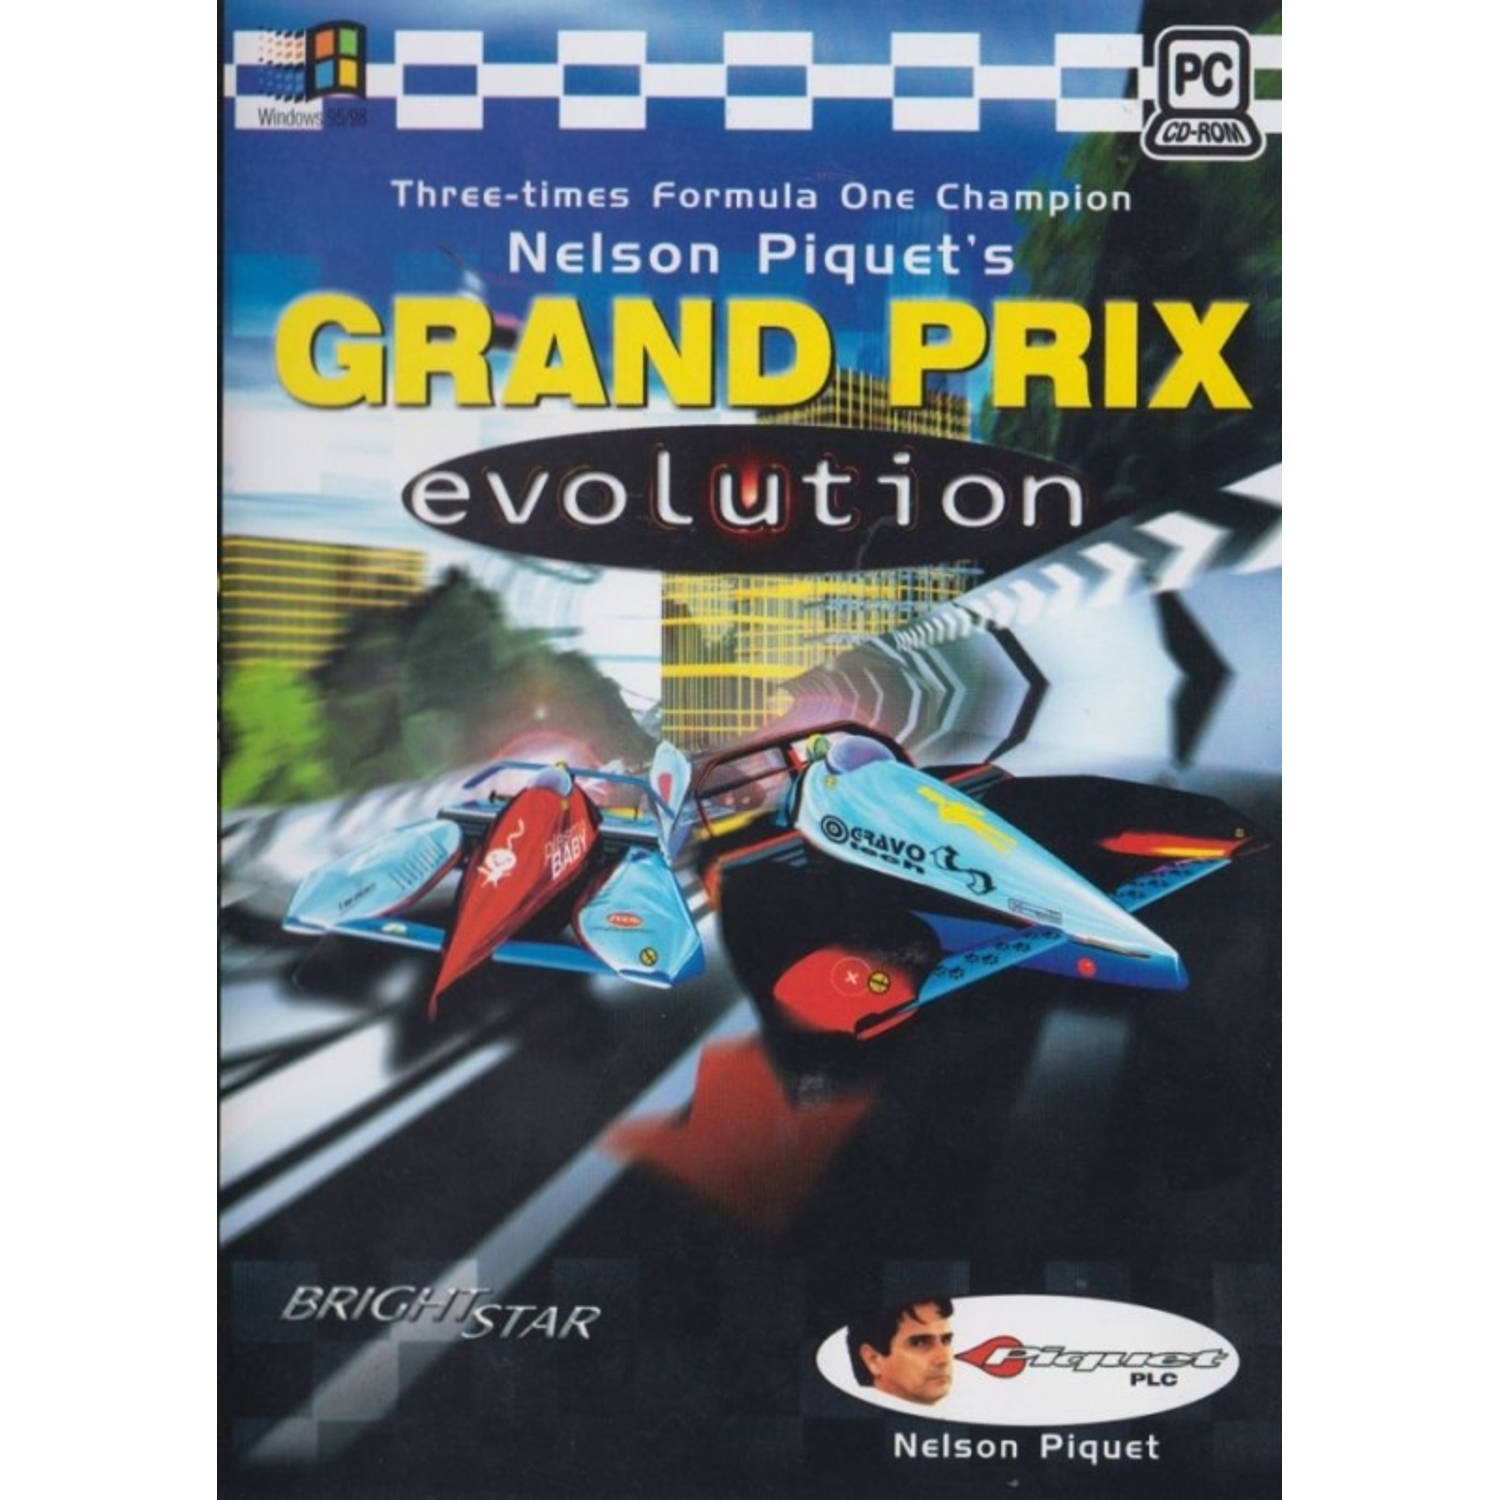 Grand prix evolution